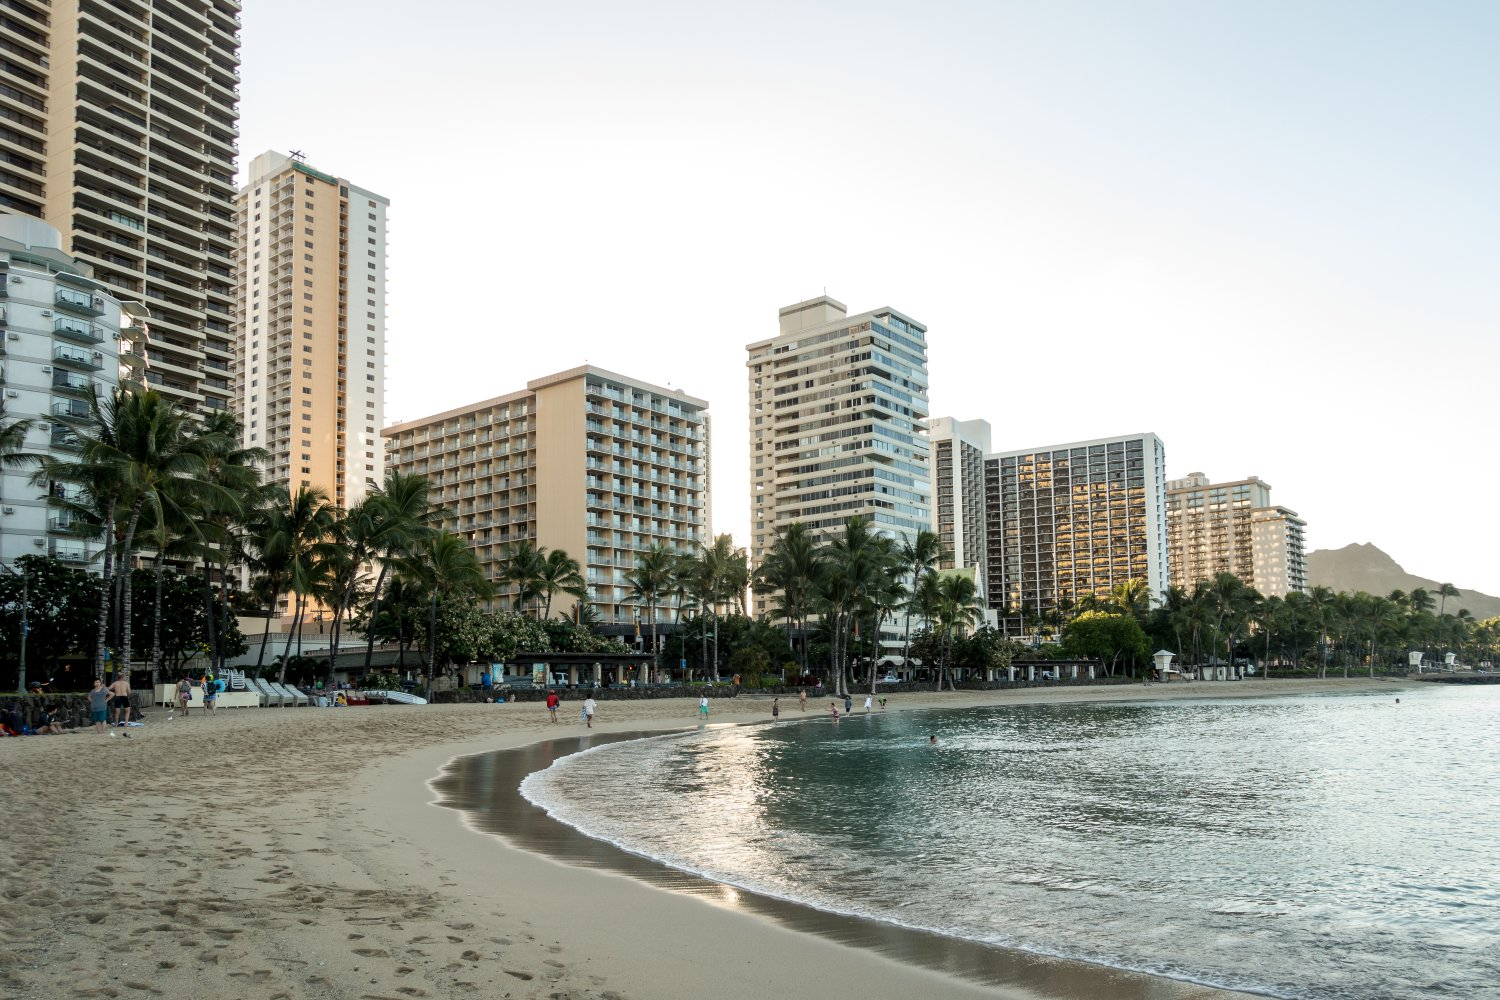 Oahu, Honolulu, am Waikiki-Strand